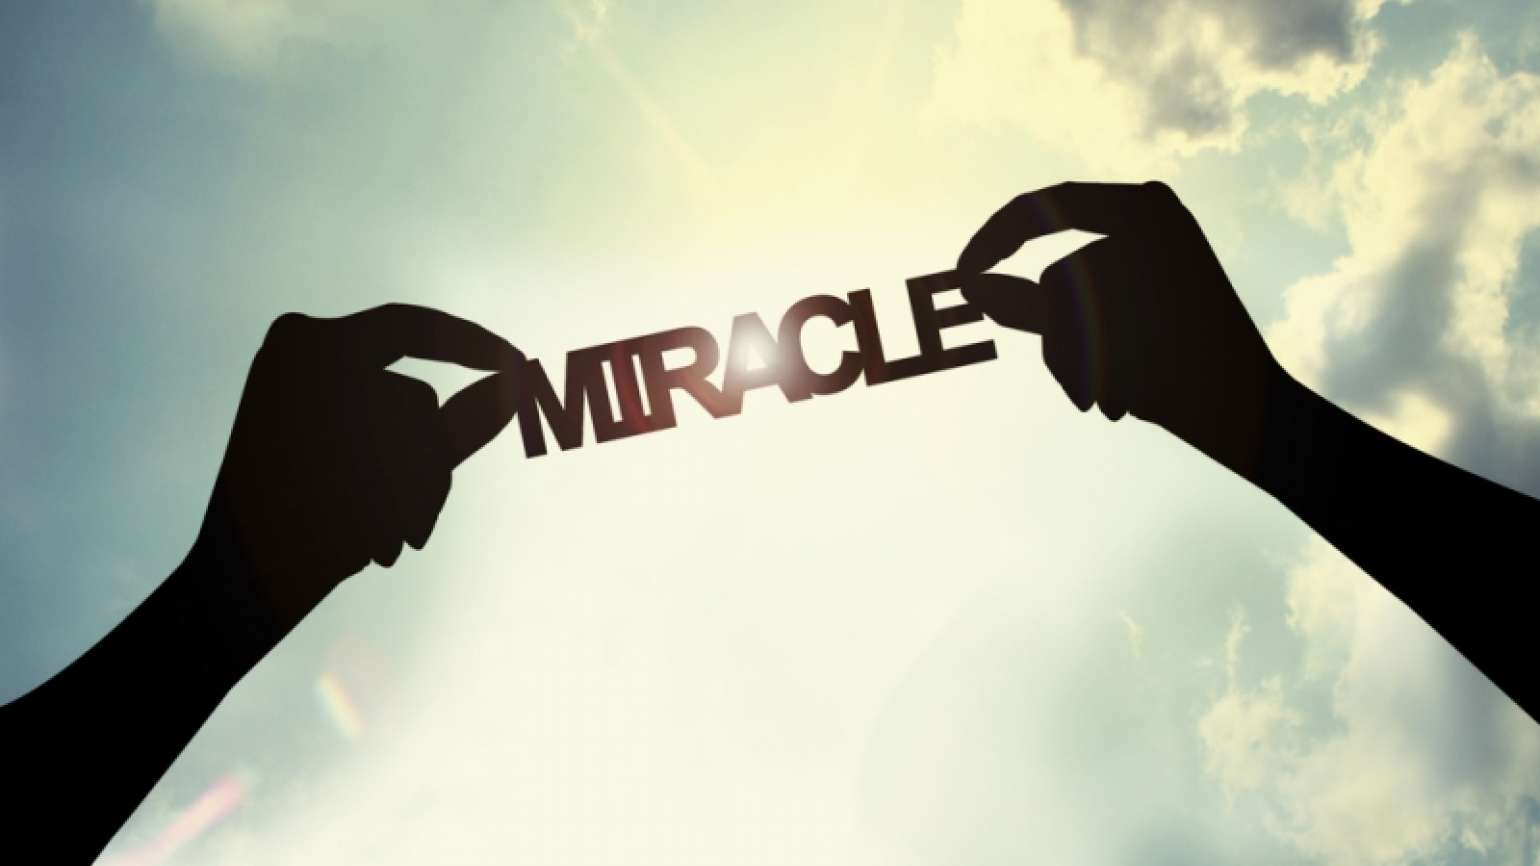 see miracles in your life: Shutterstock